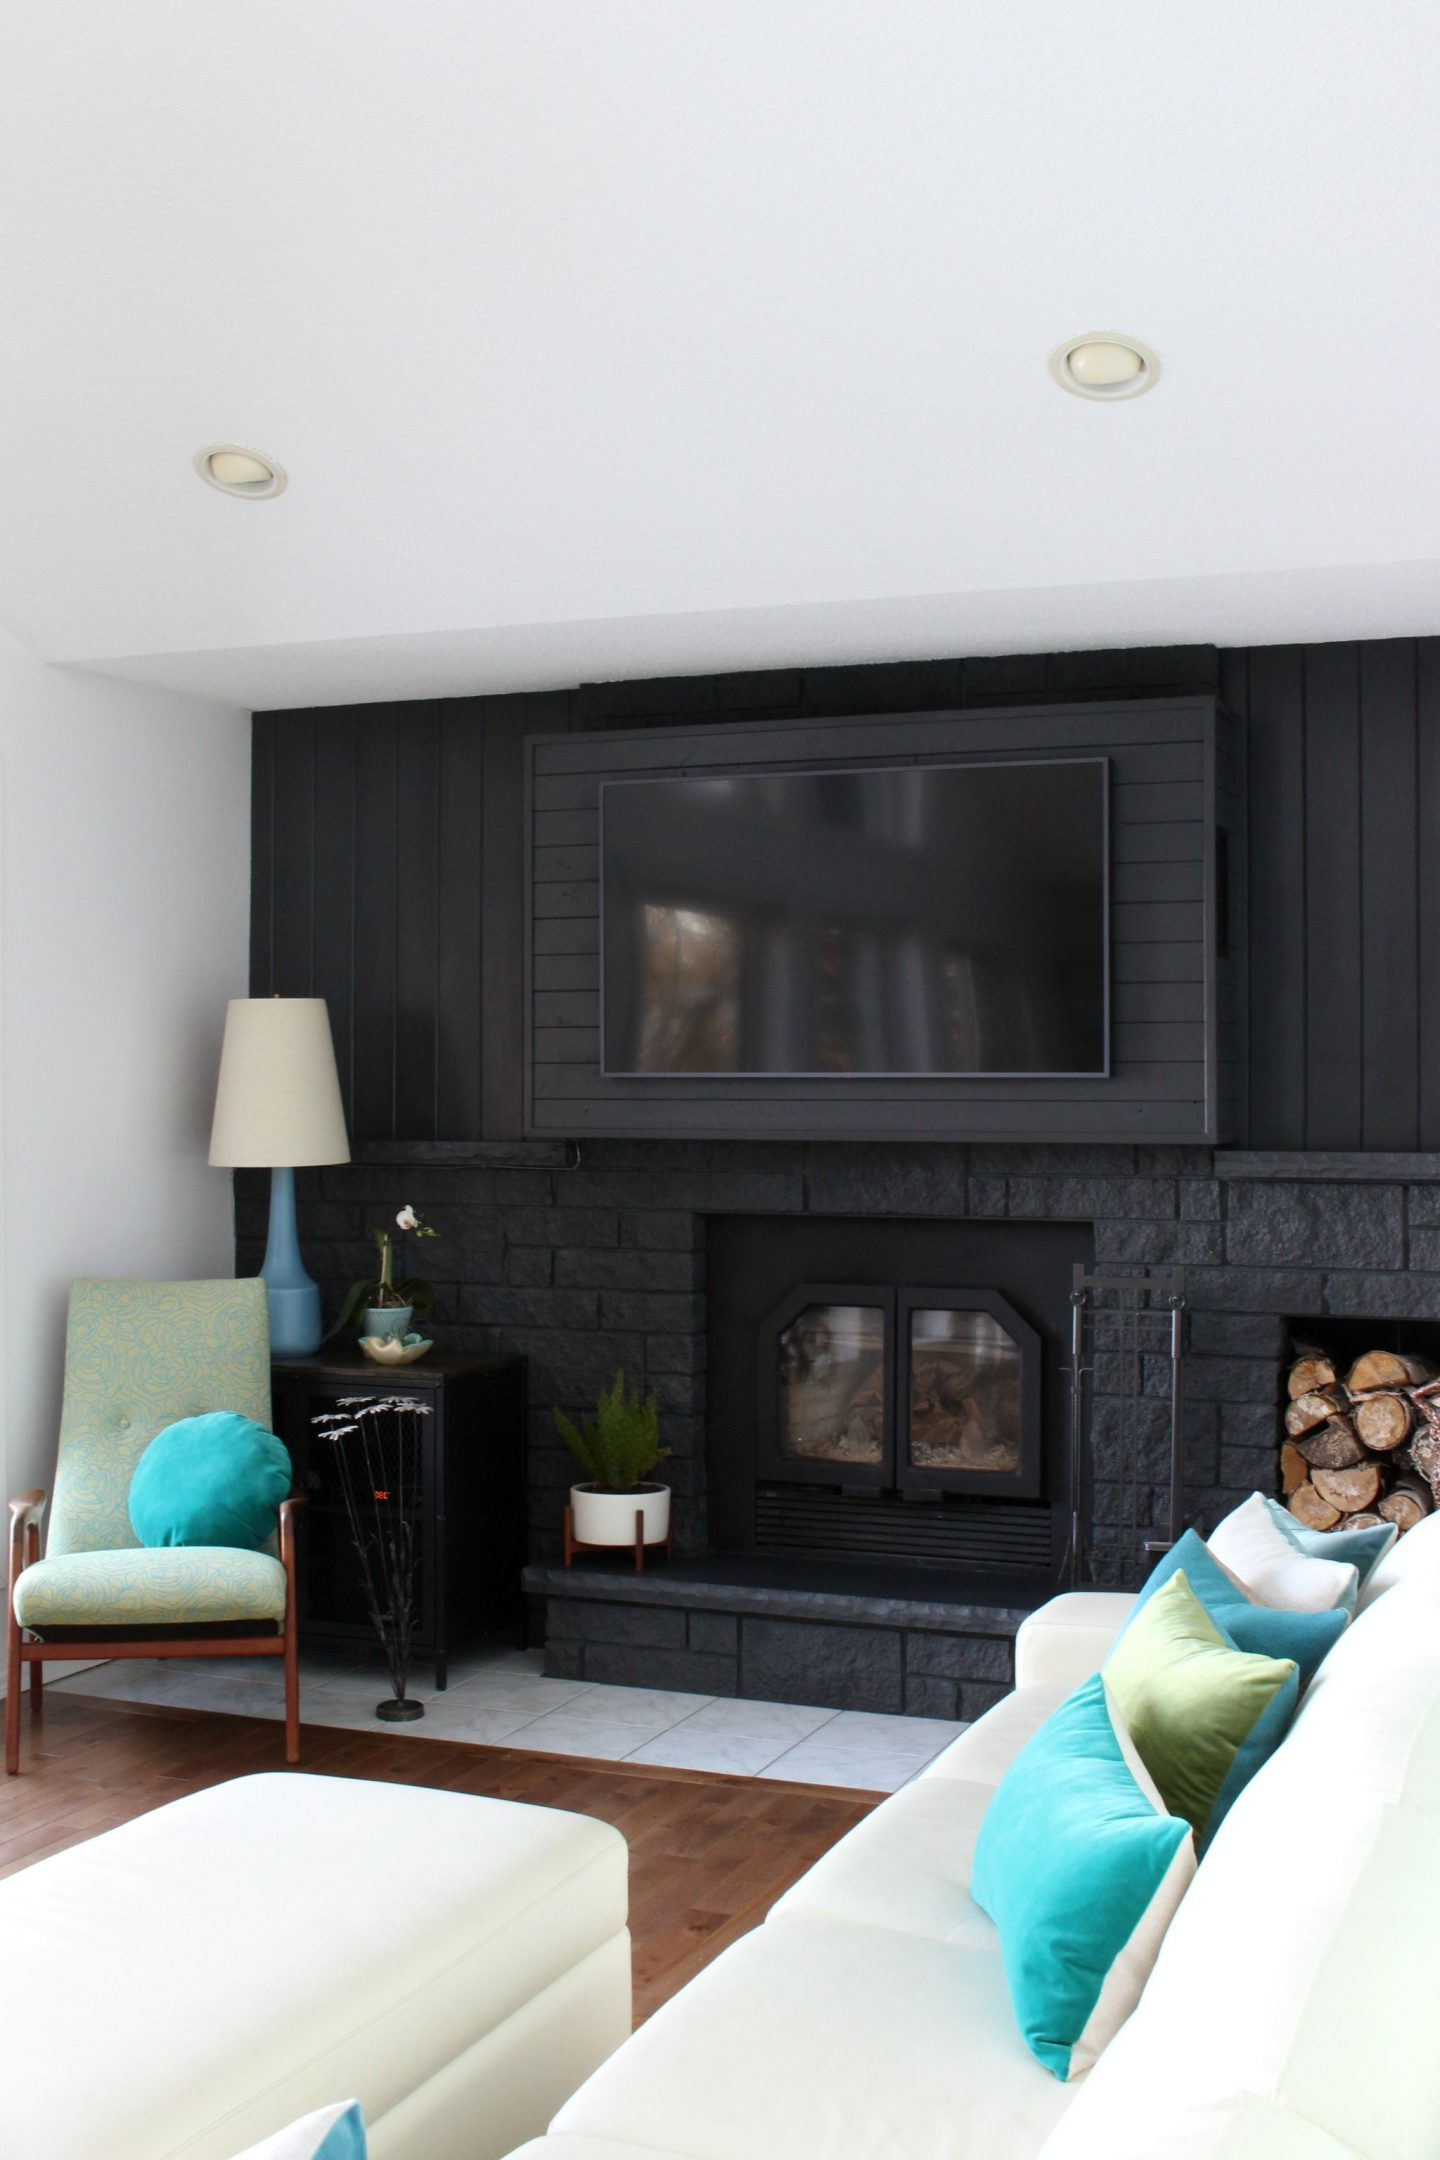 How to build a fireplace bump out to hang a tv dans le - How to put out a fireplace ...